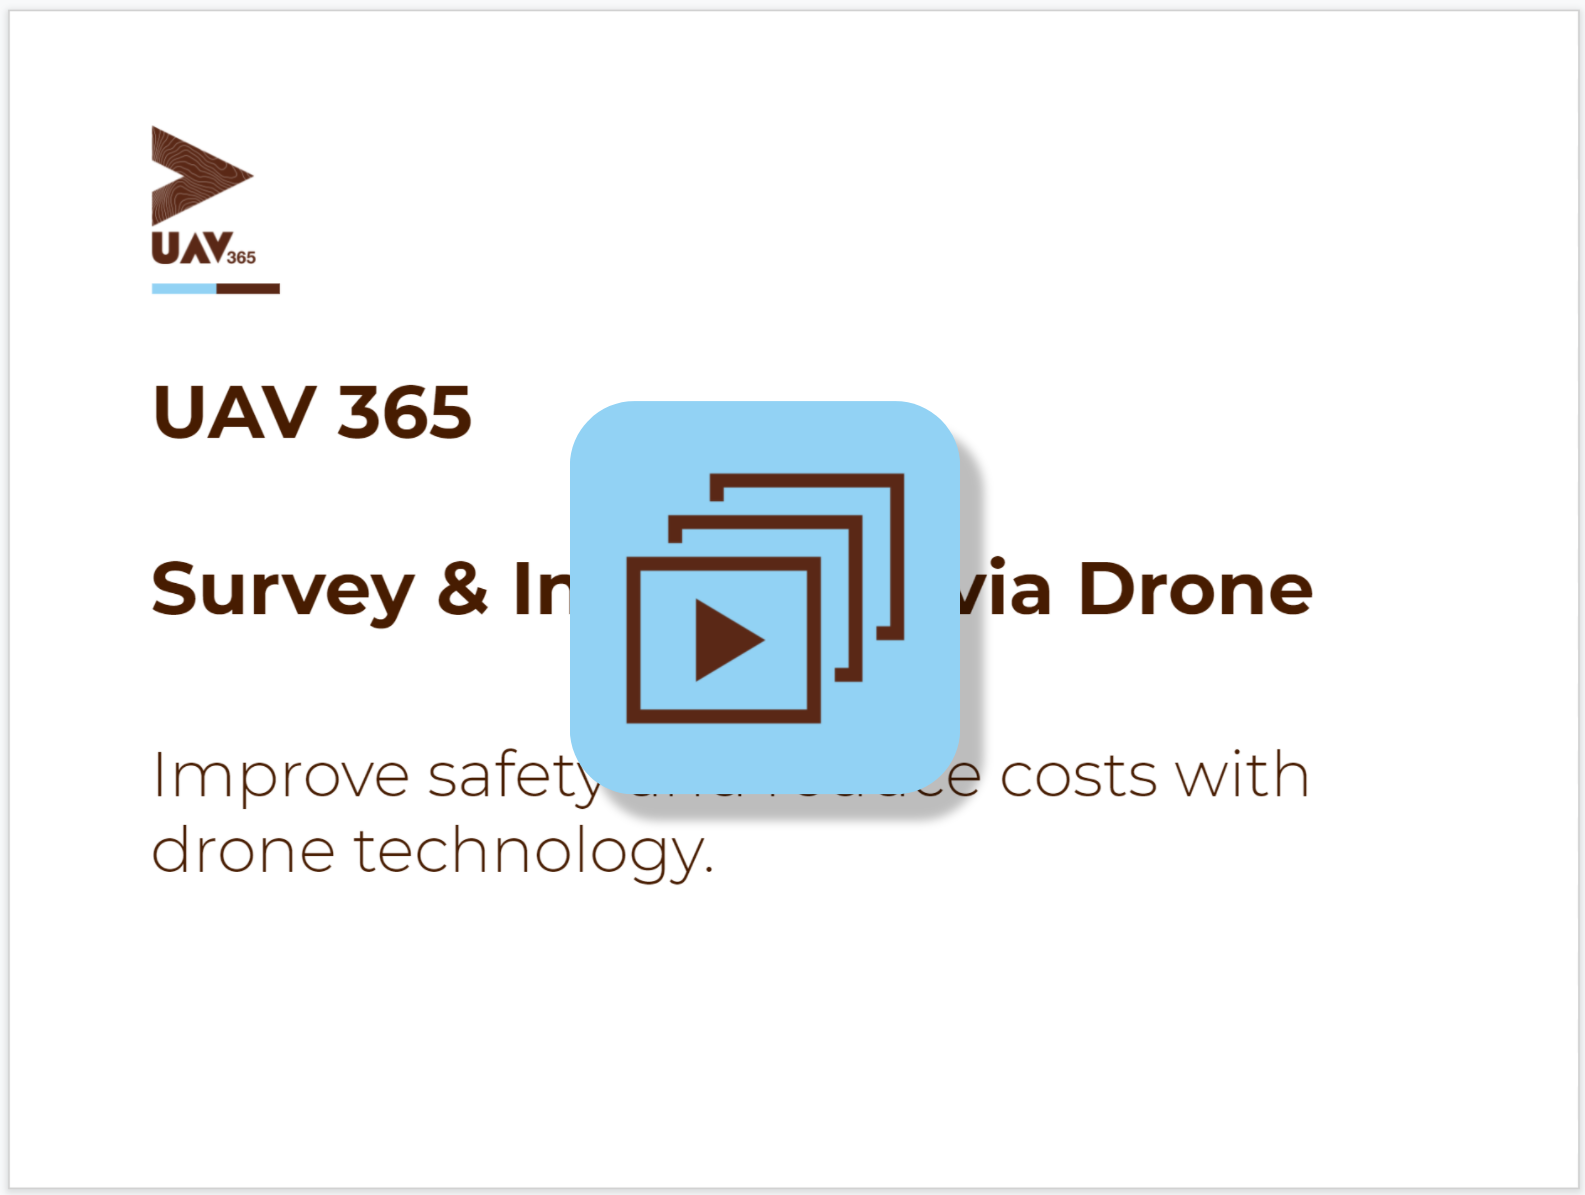 image shows the first page of a presentation on UAV 365 services